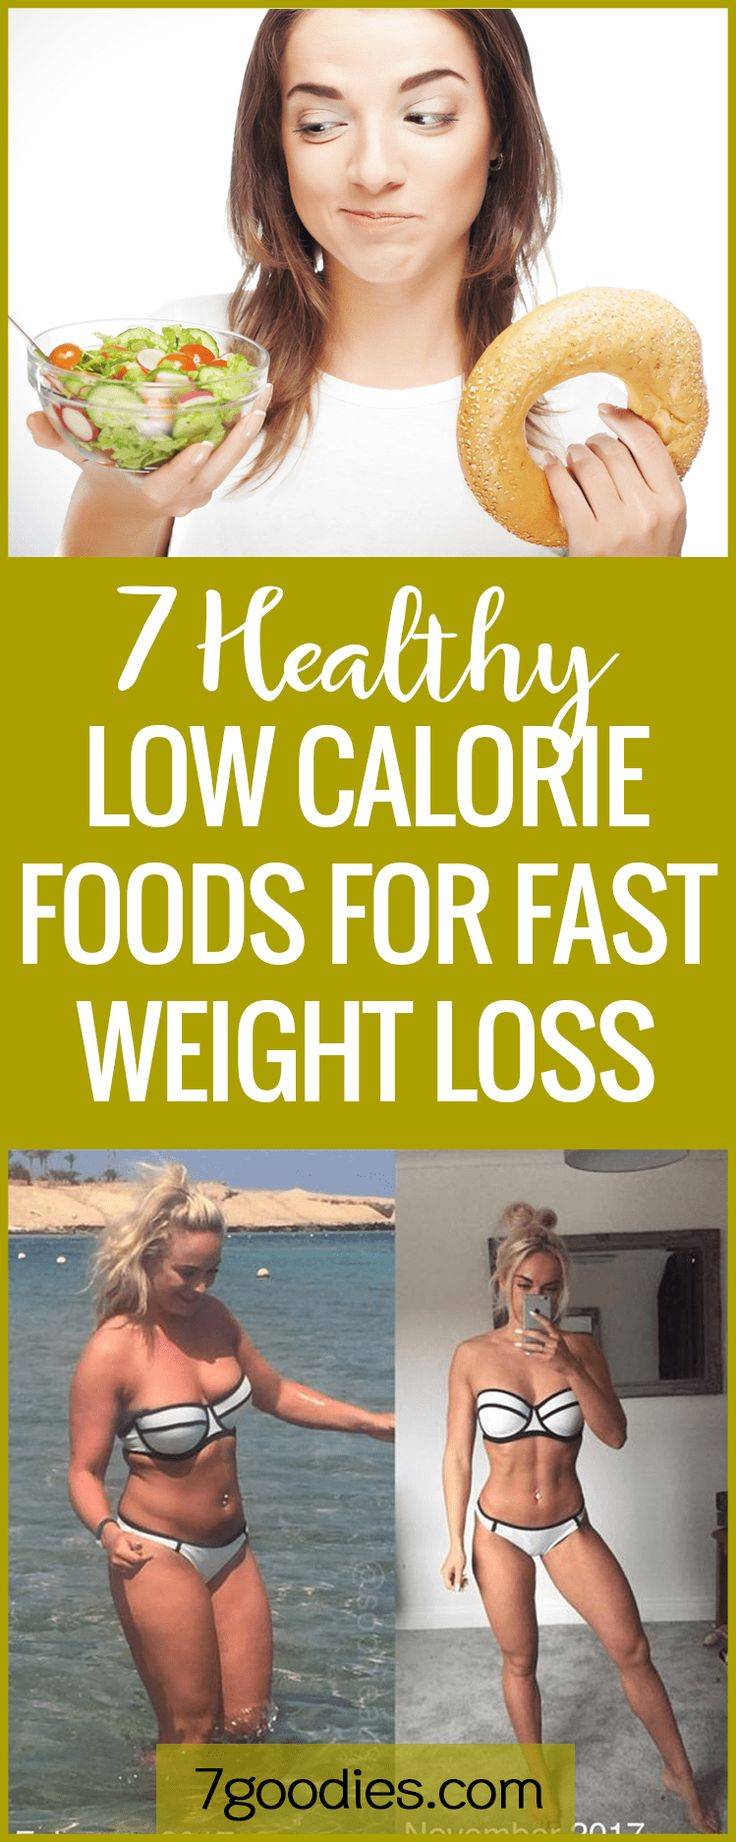 Low calorie foods for quick and #healthy #weightloss #healthyeating